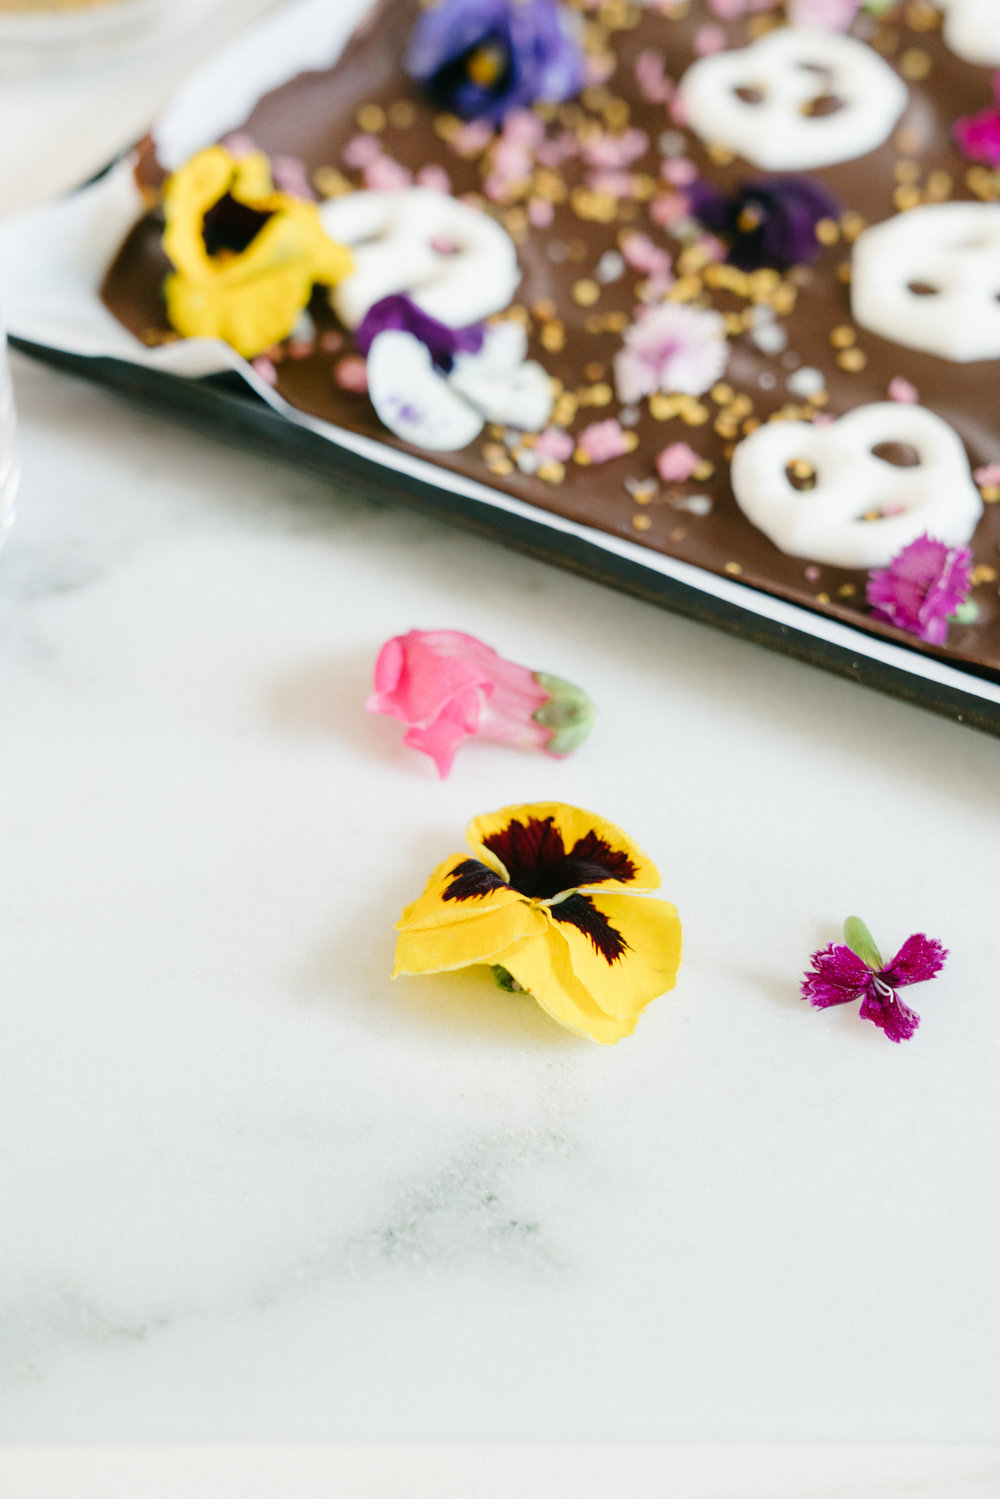 adaptogen spring chocolate bark with bee pollen